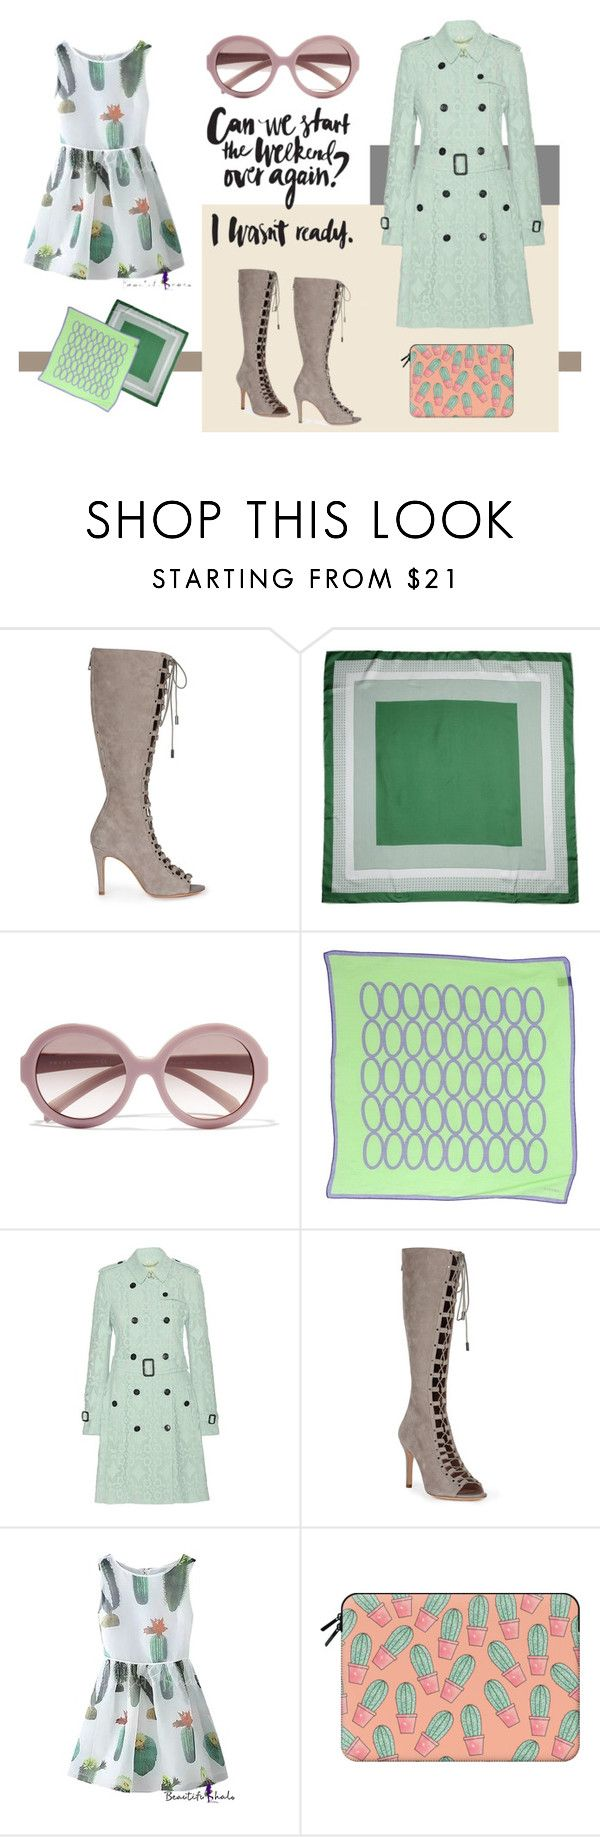 """""""Cactus chic"""" by pinfi on Polyvore featuring CÉLINE, Prada, Piombo, Burberry and Casetify#fashion #trends"""